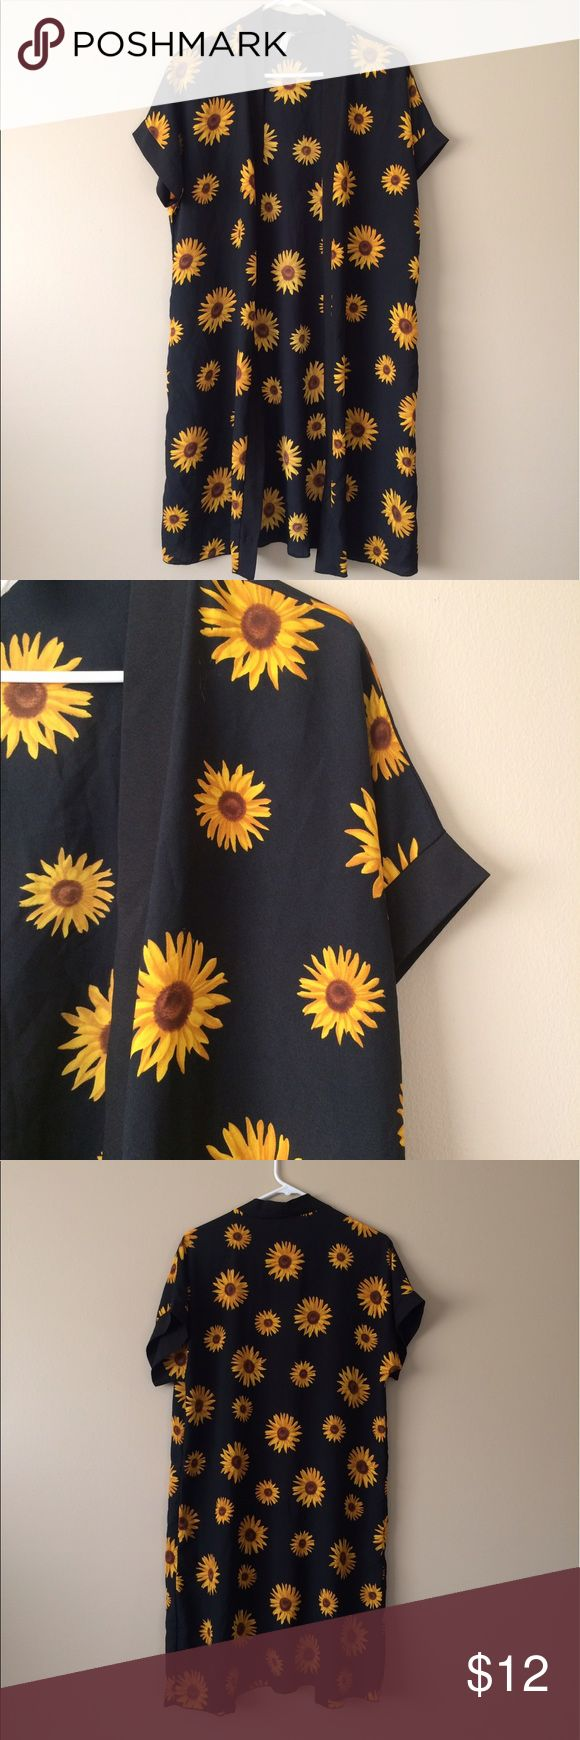 Daisy duster Adorable daisy duster from body central tag is worn off so I would say best fits a medium/large. Great condition Body Central Tops Blouses